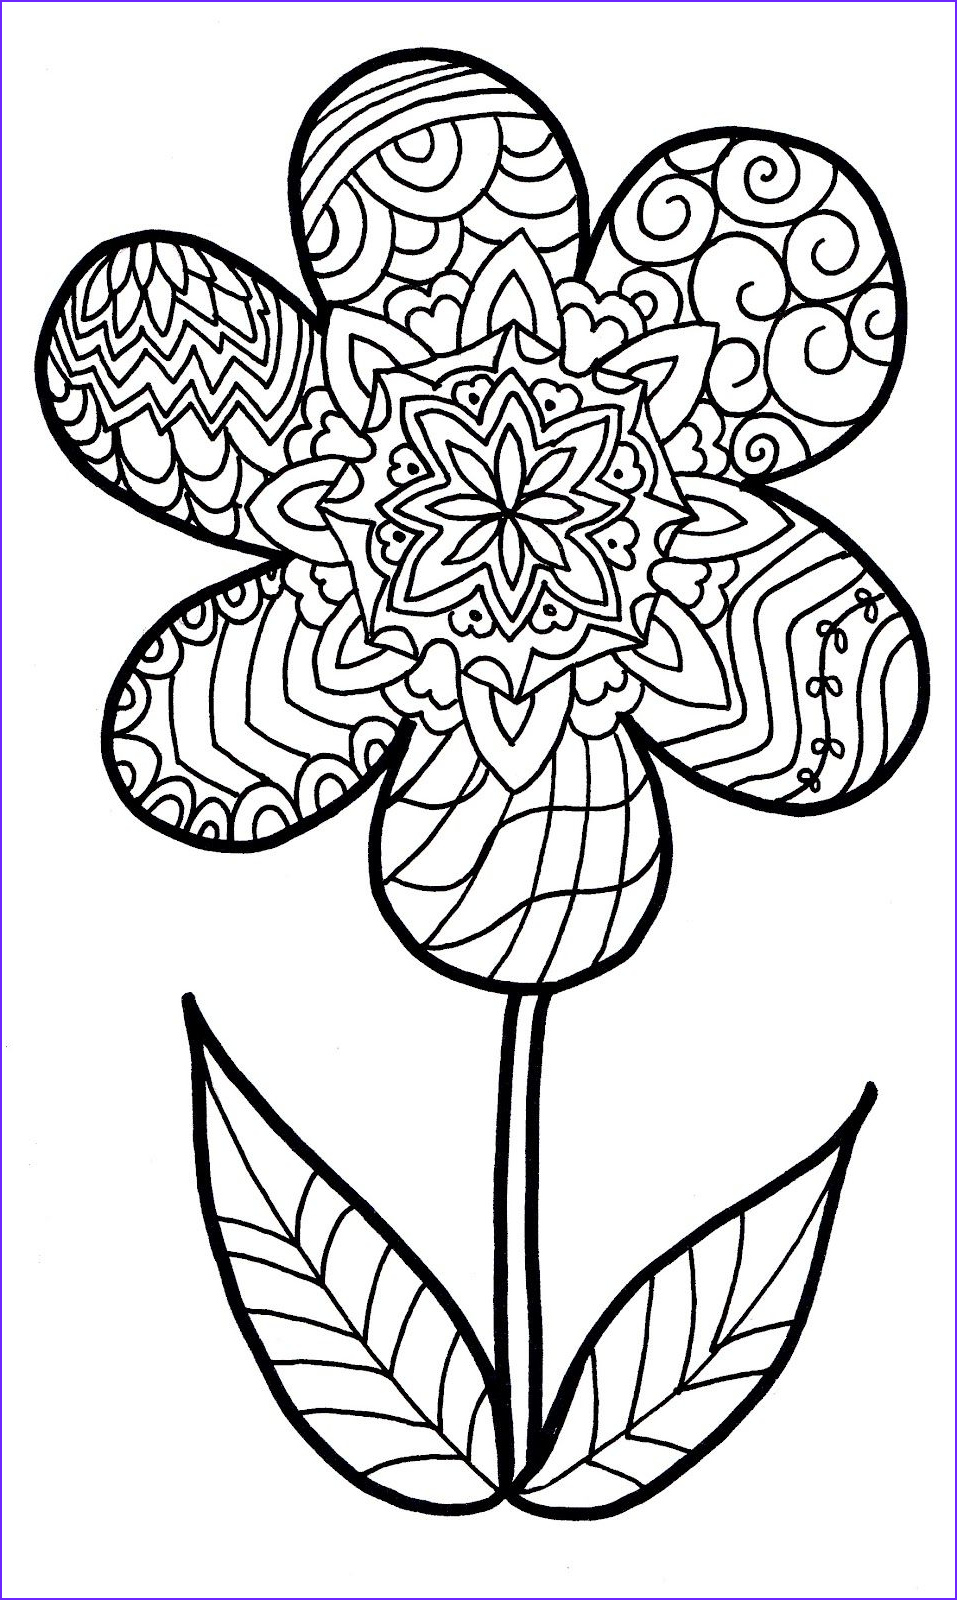 Free Coloring Pages for Adults Flowers New Photography Flower Zentangle Colouring Page 957×1600